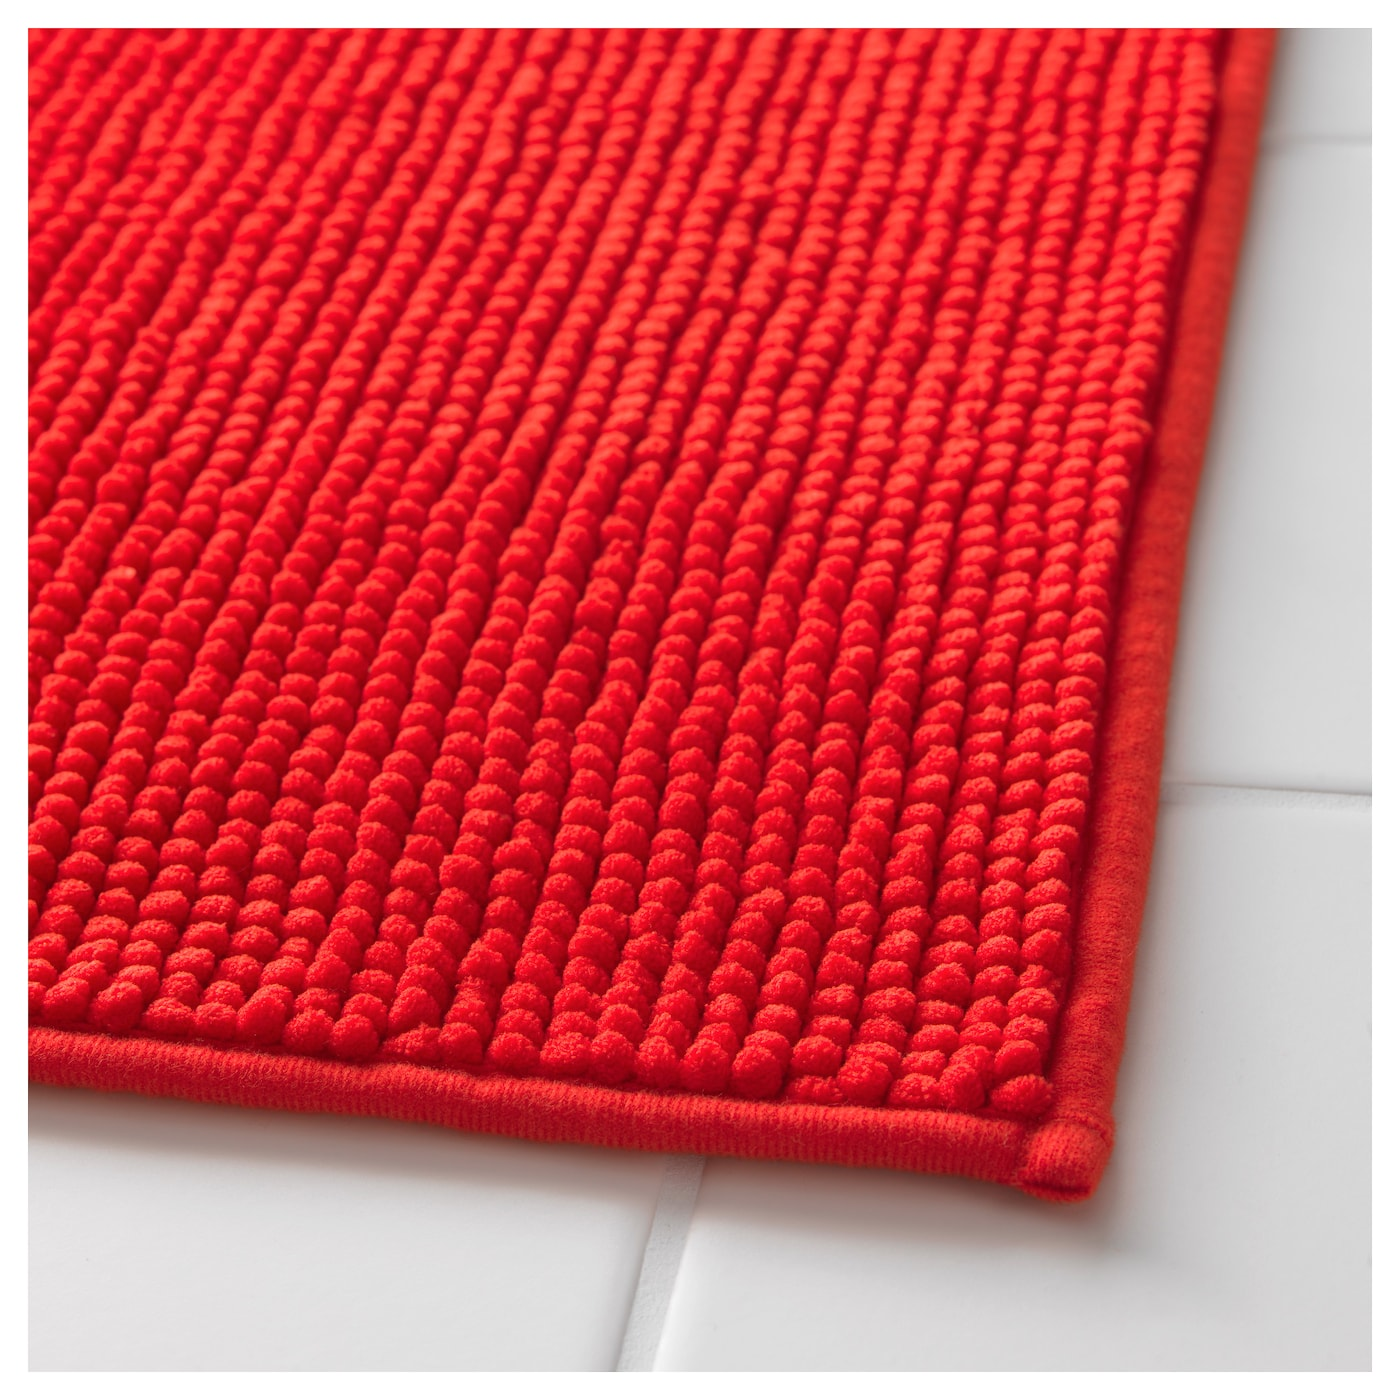 Can Bathroom Rugs Go In The Dryer: BADAREN Bath Mat Bright Red 40x60 Cm